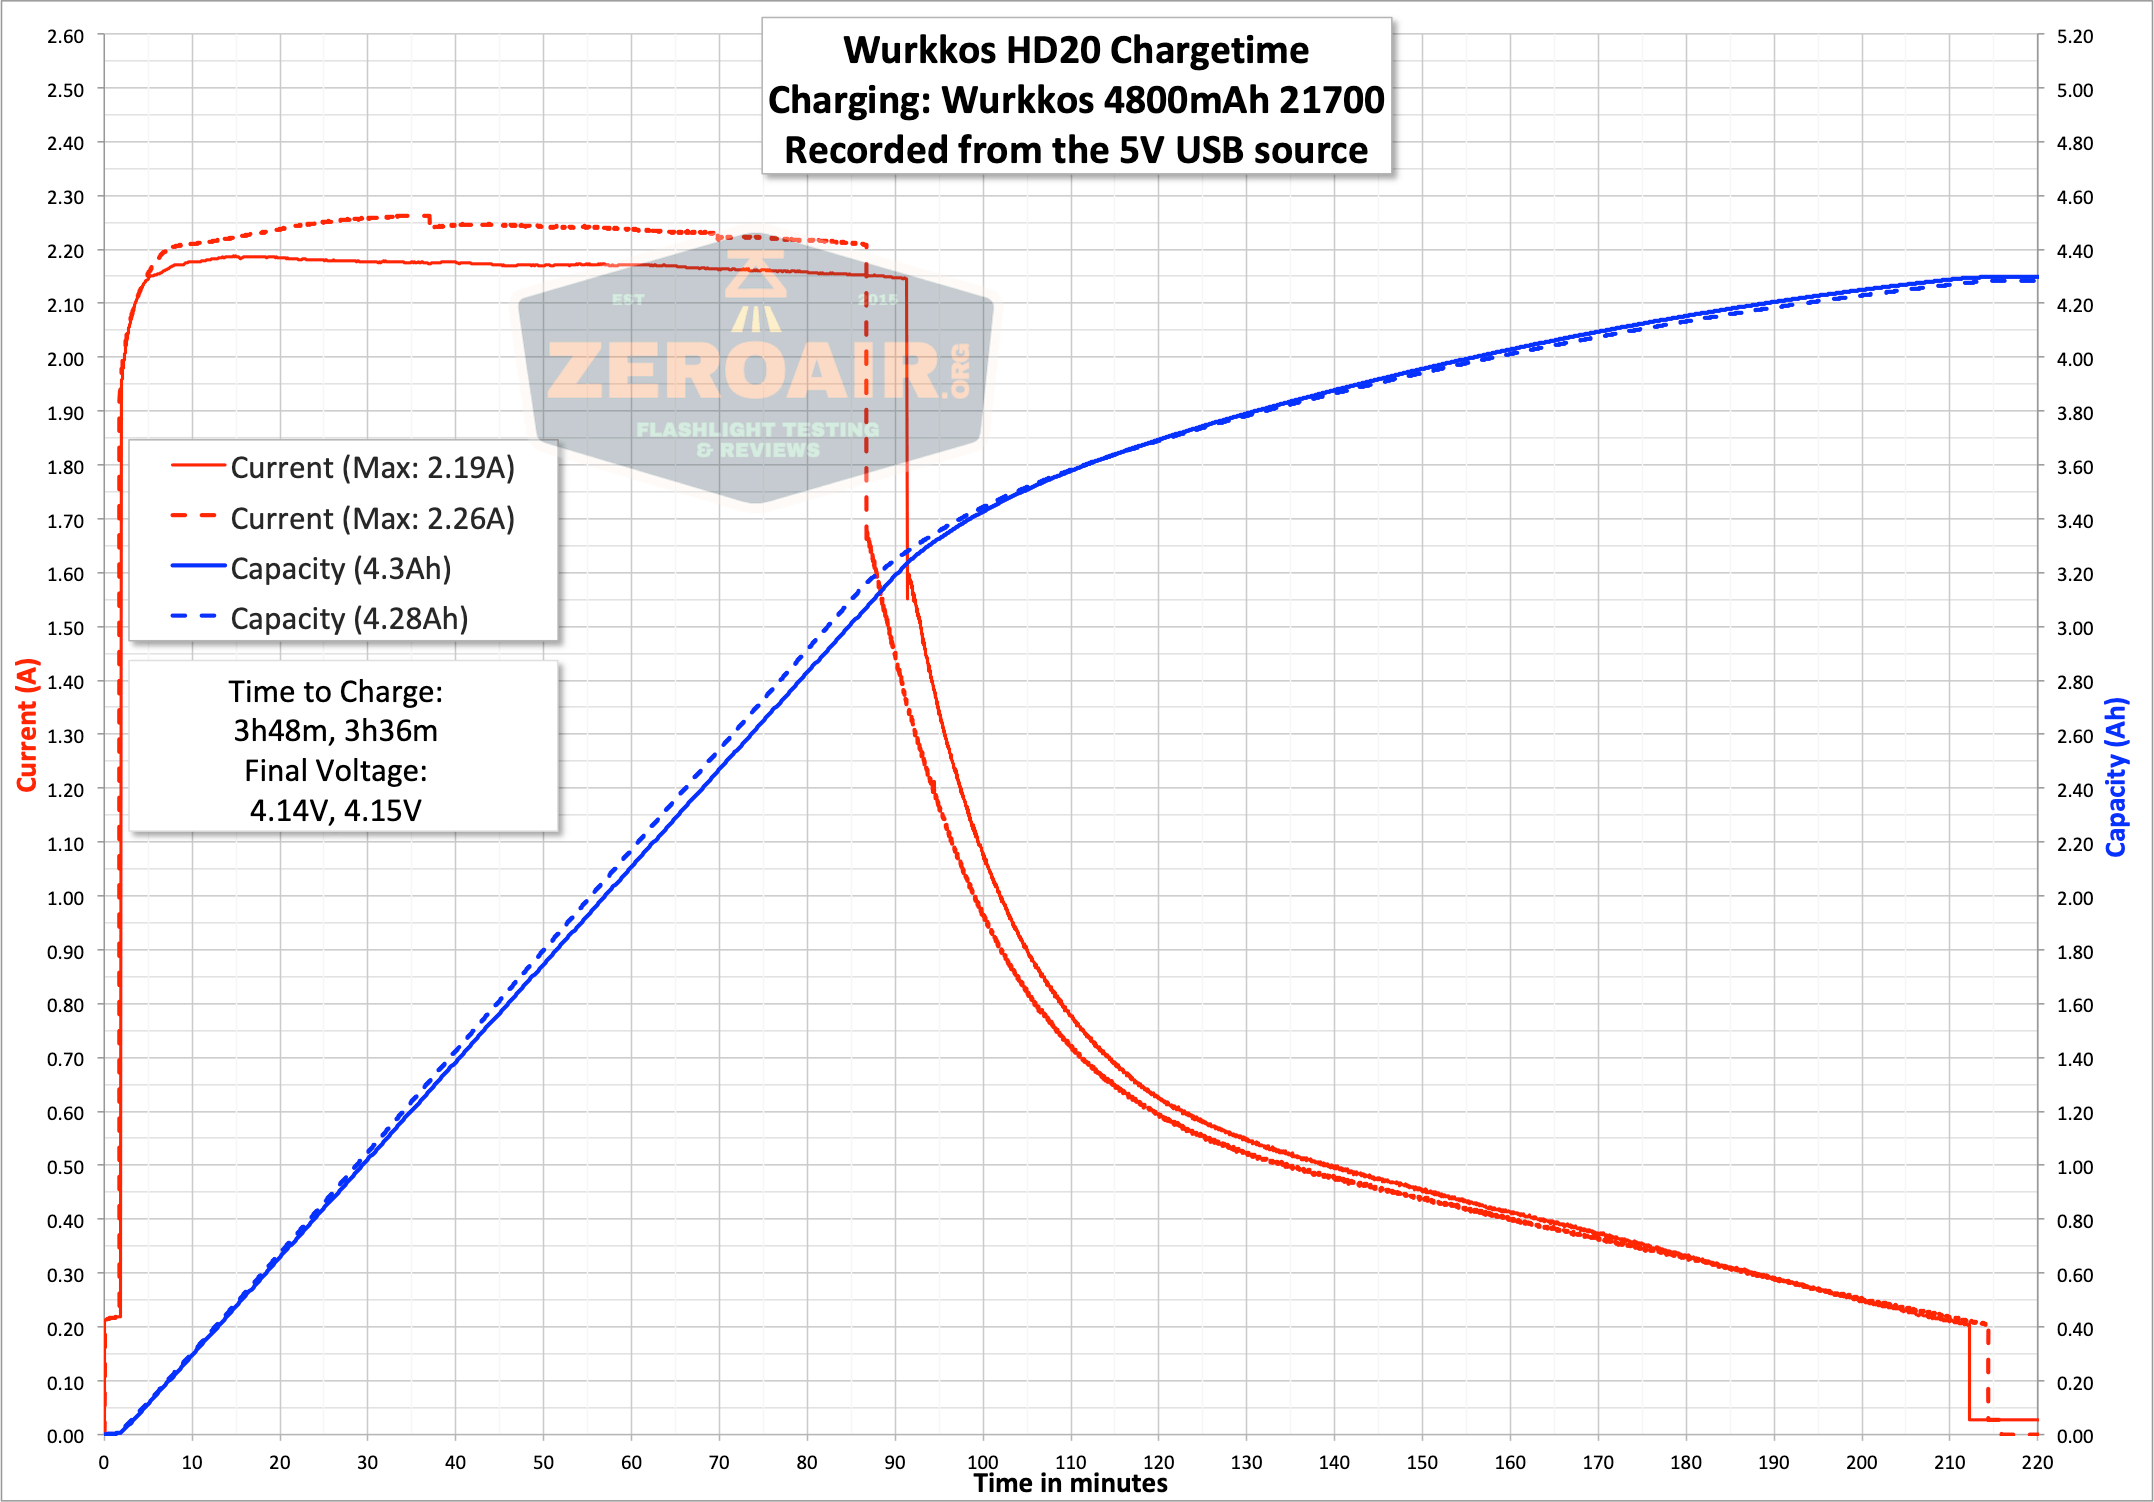 wurkkos hd20 21700 headlamp charge graph